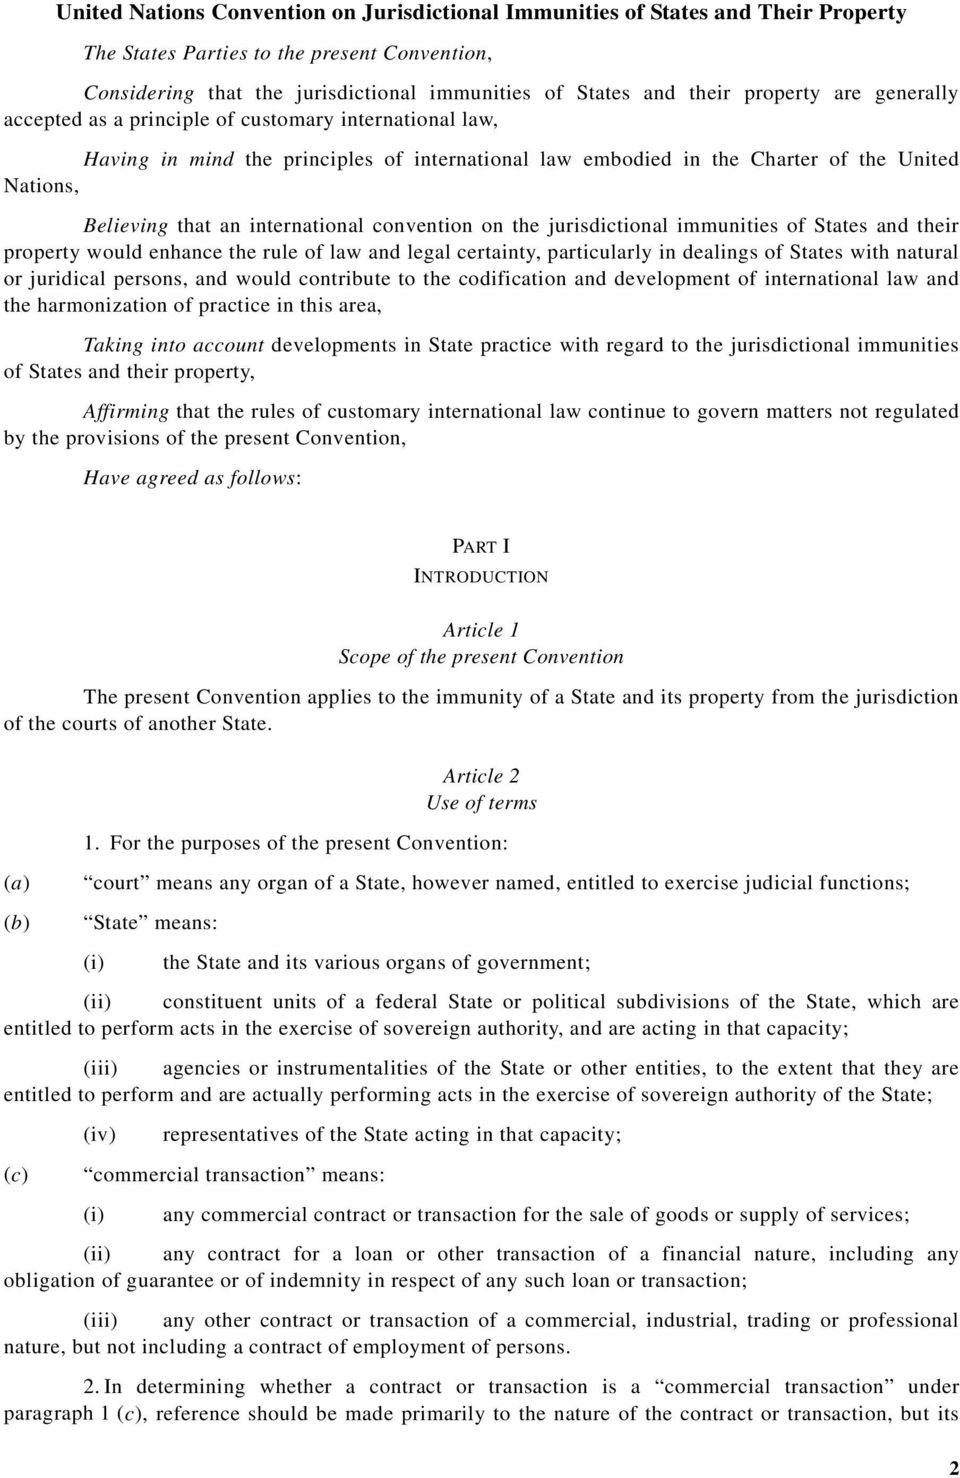 international convention on the jurisdictional immunities of States and their property would enhance the rule of law and legal certainty, particularly in dealings of States with natural or juridical